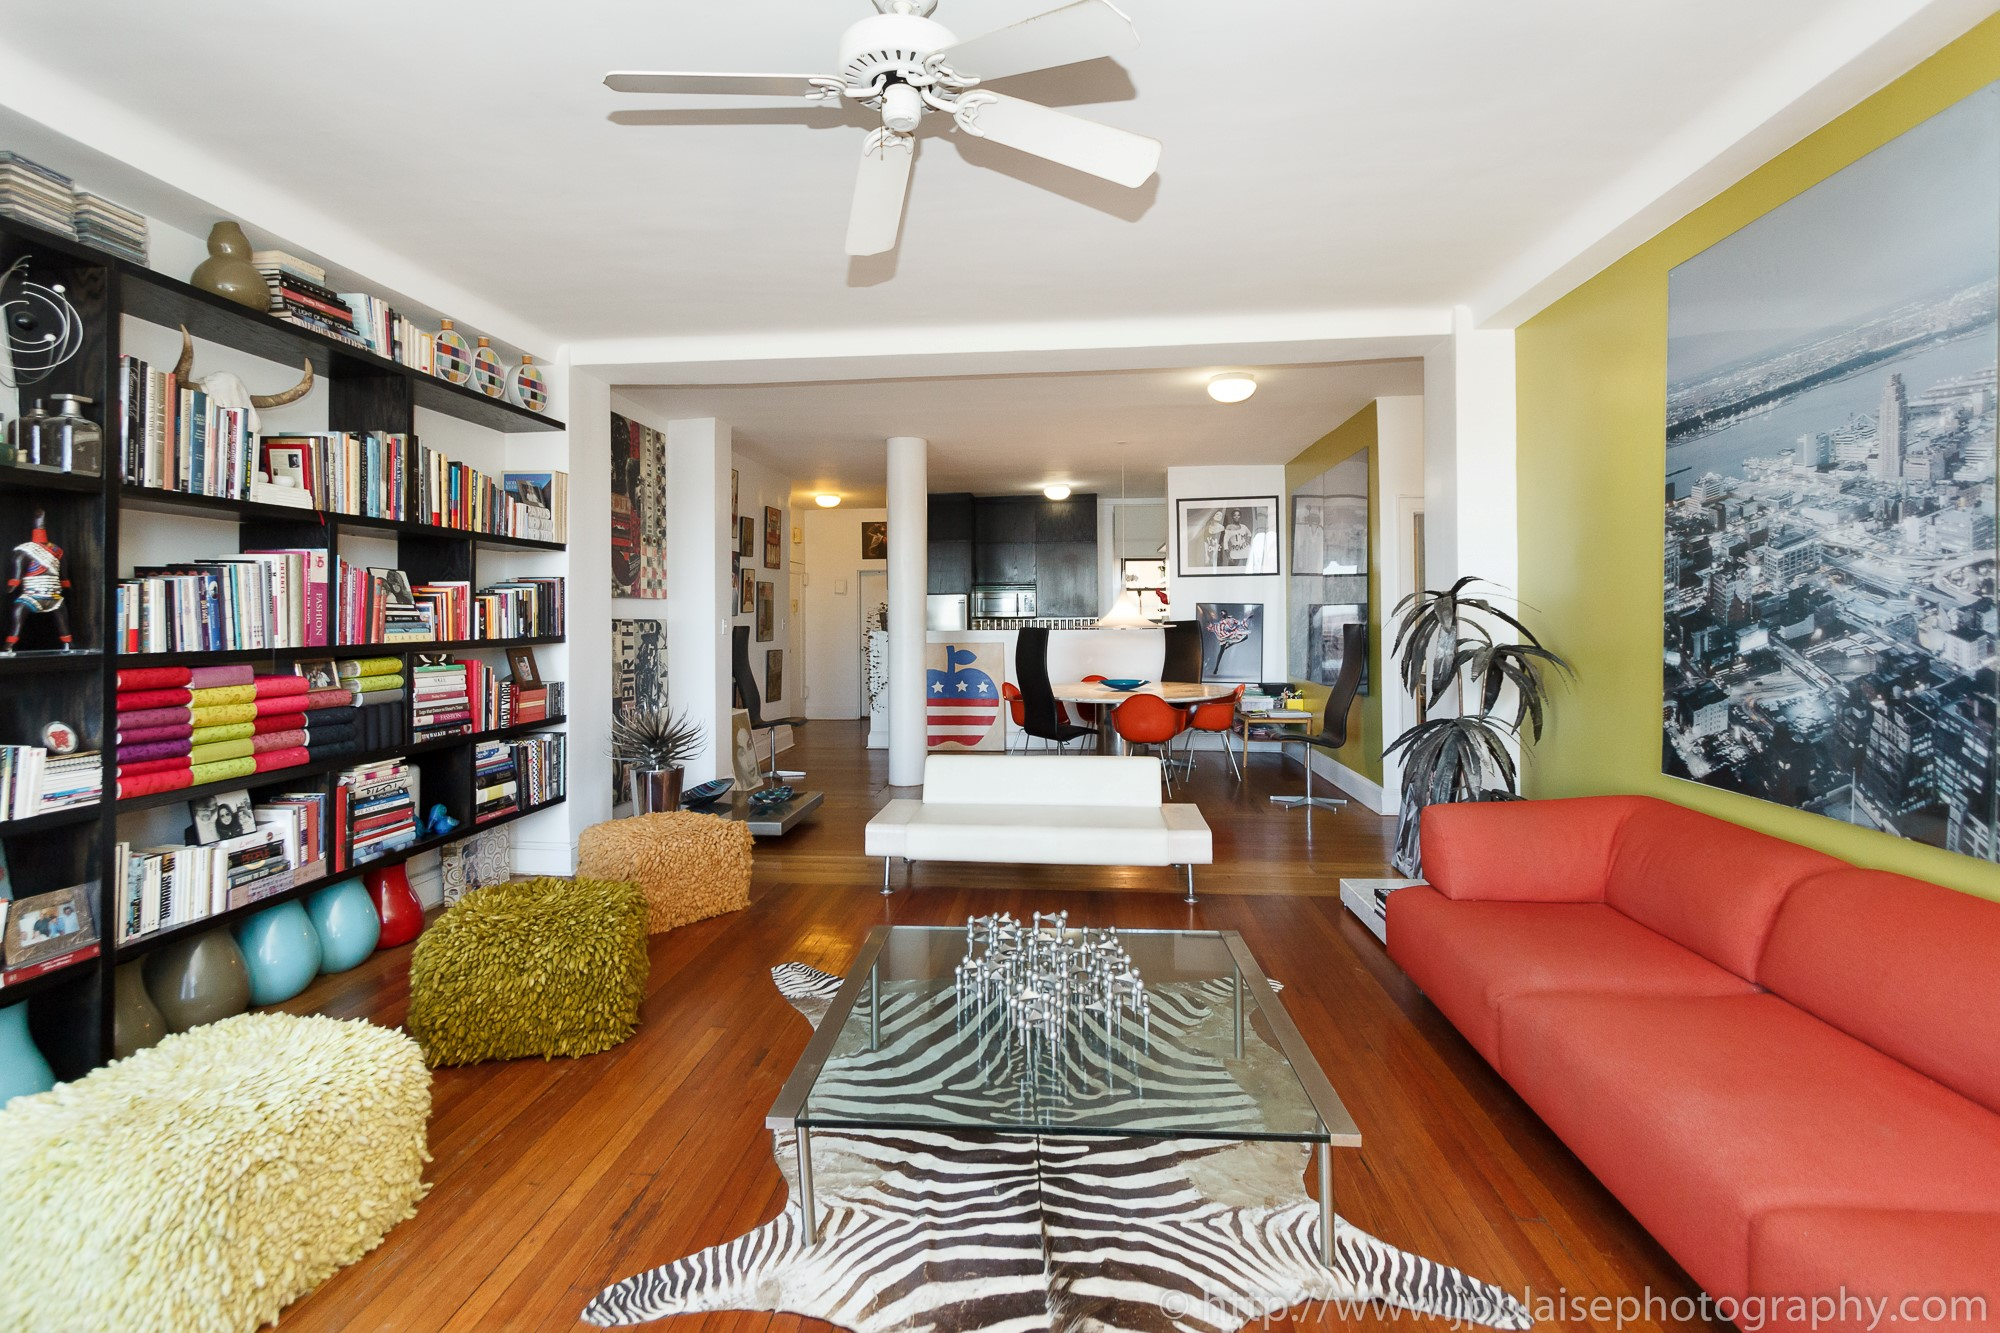 Blog jp blaise photography for Apartments upper west side